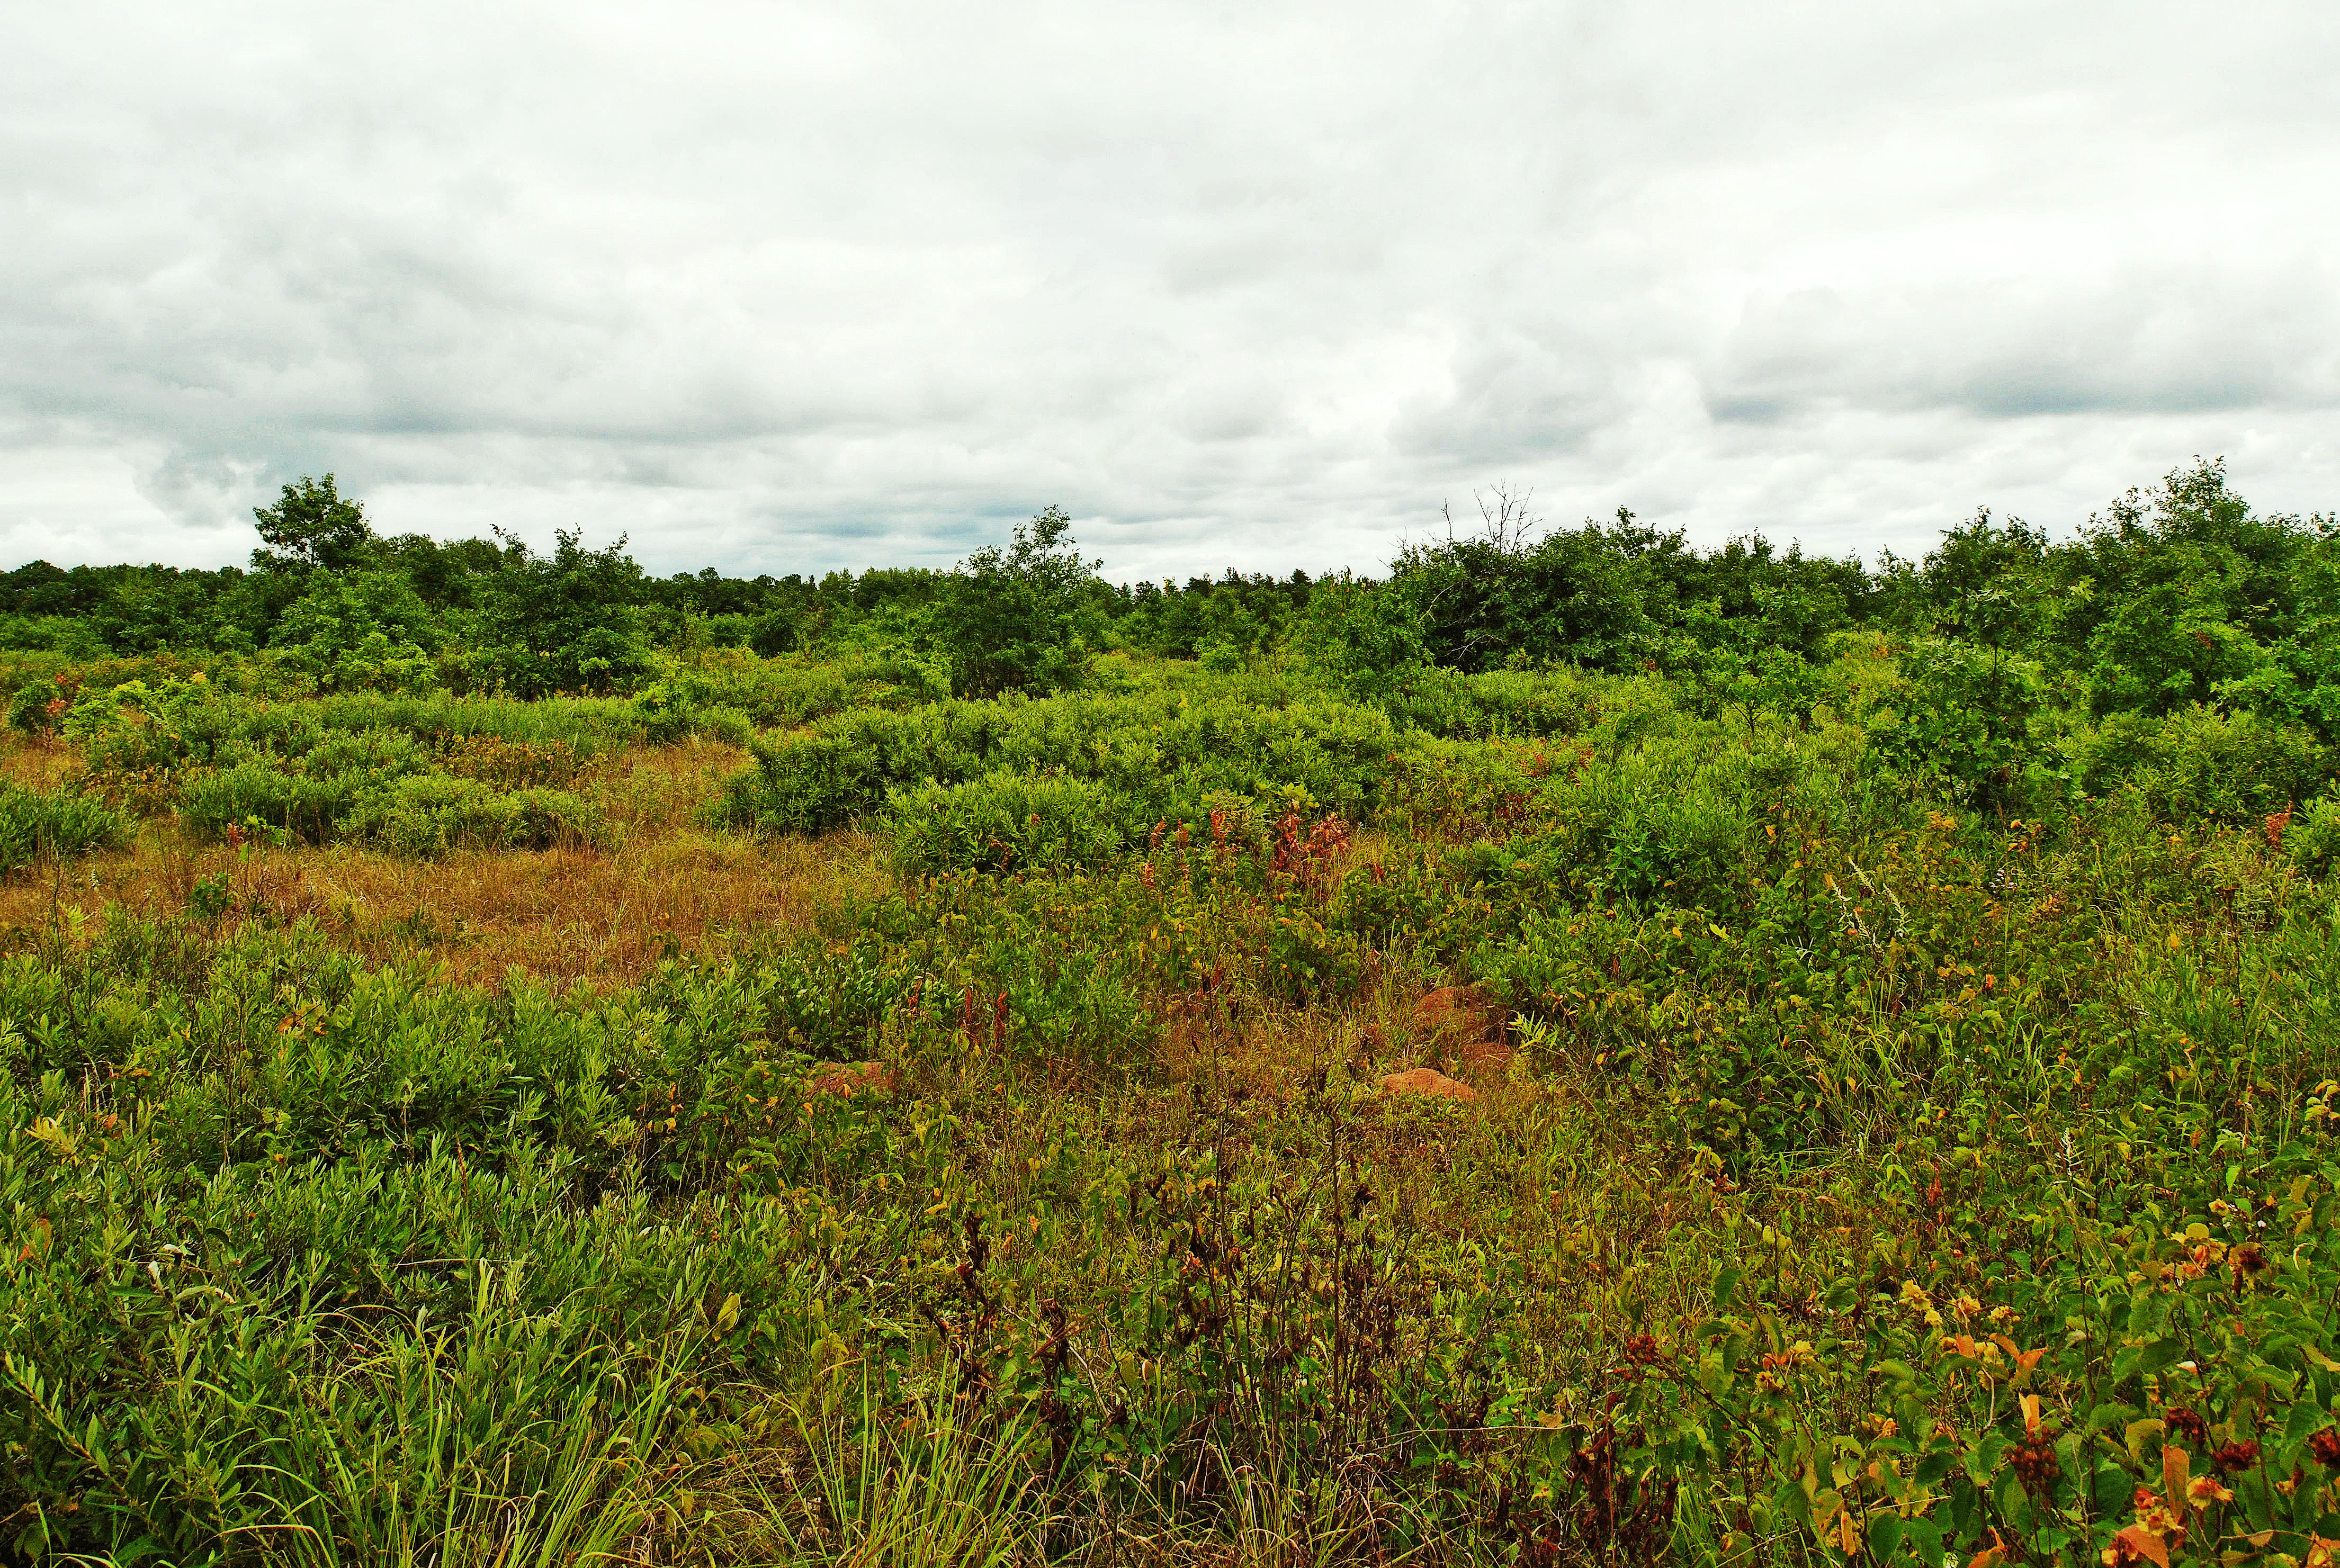 File:Kohler-Peet Barrens and Cedar Swamp.jpg - Wikimedia Commons